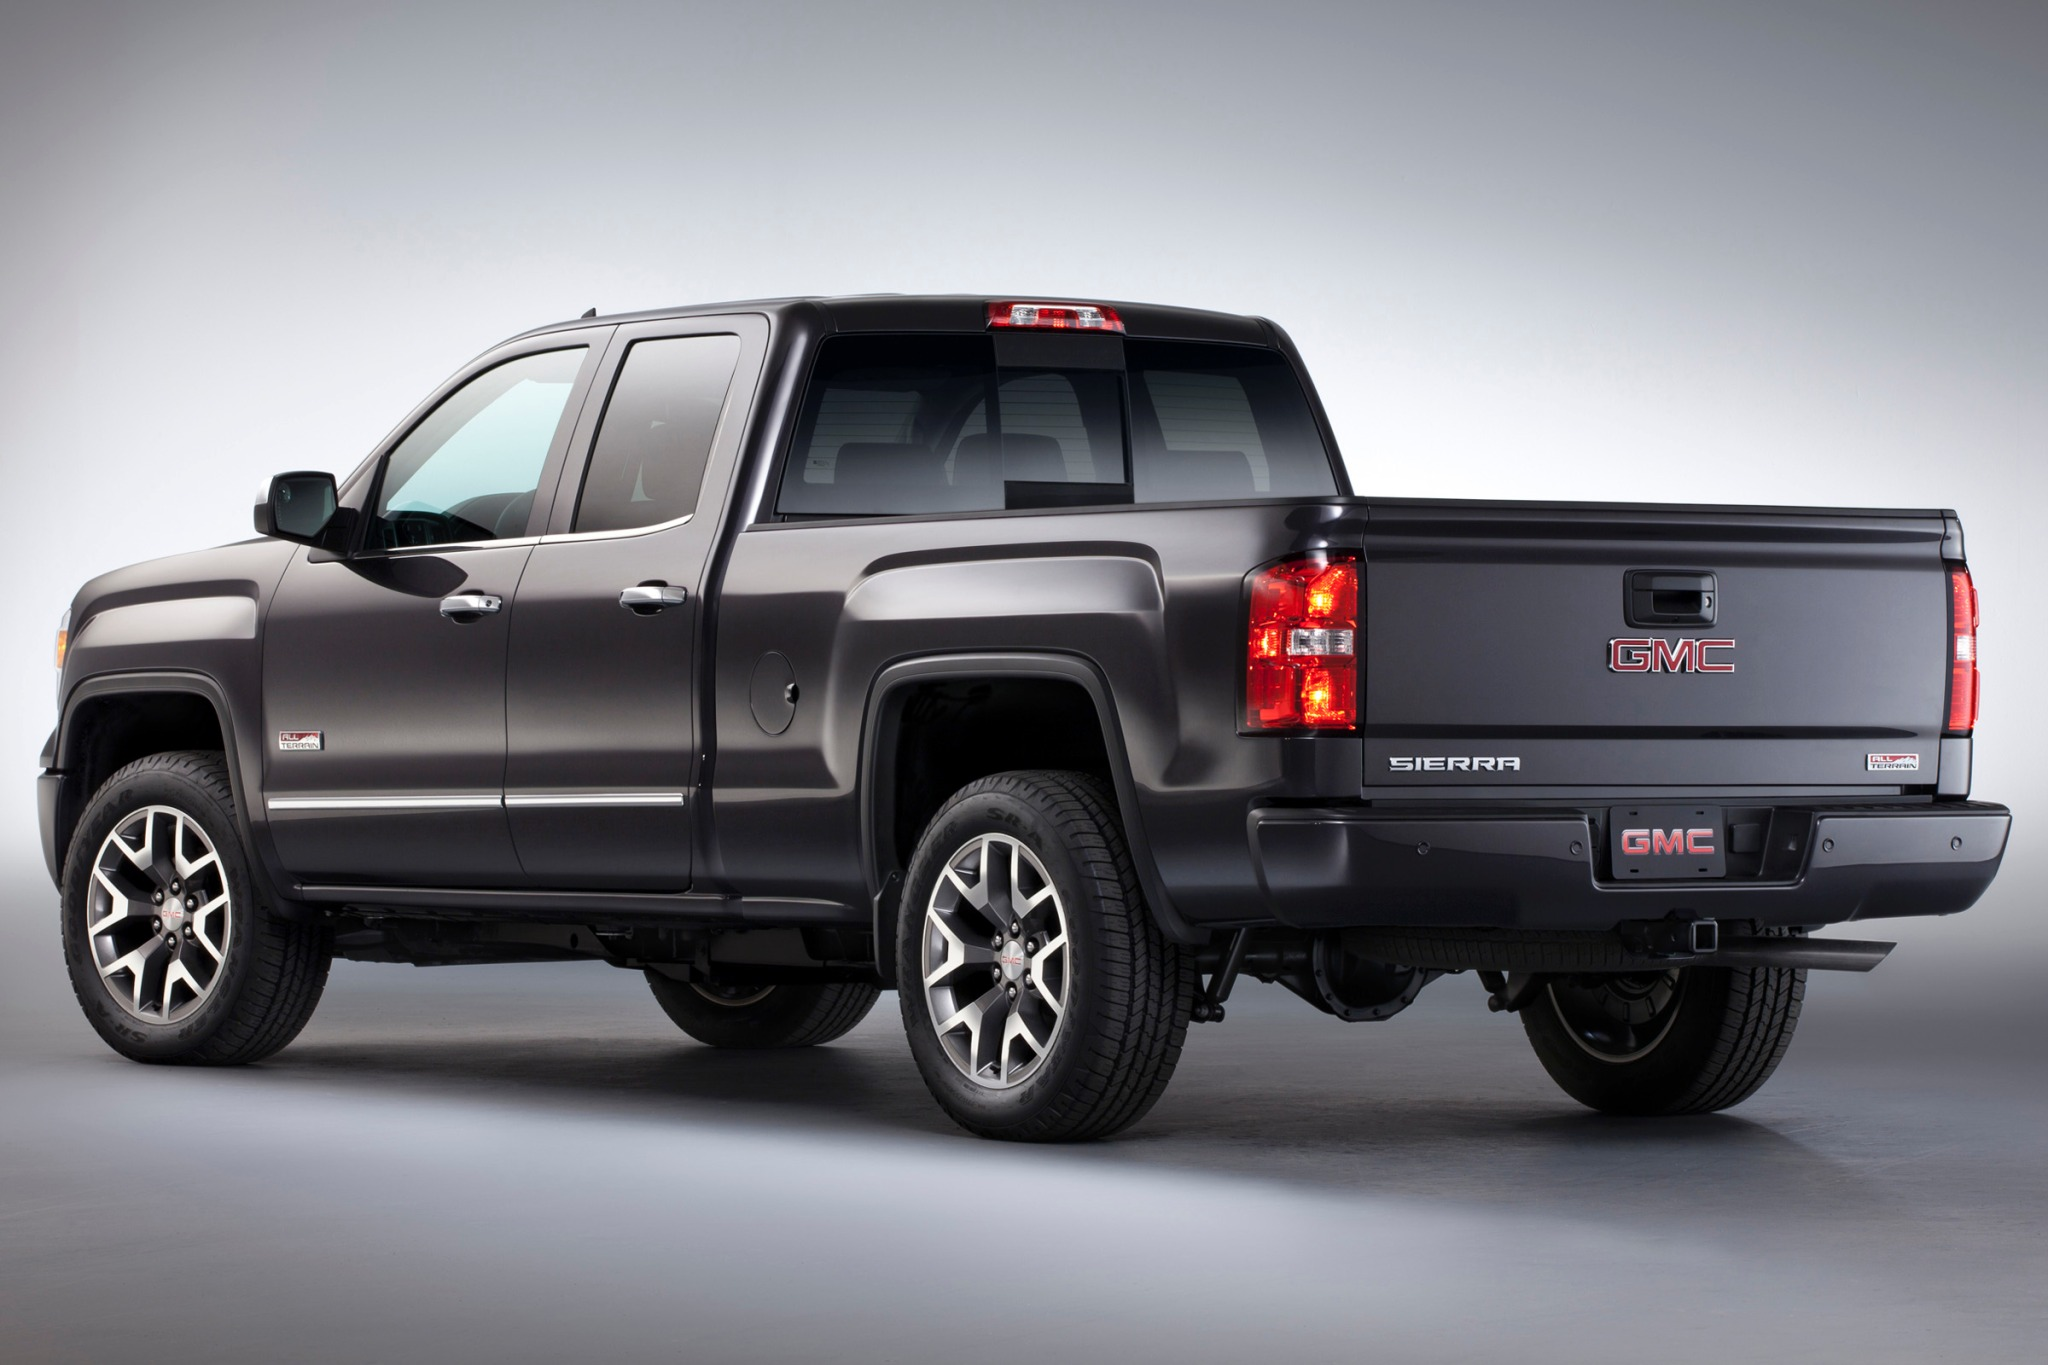 2017 GMC Sierra 2500 HD SLT Extended Cab photo - 3